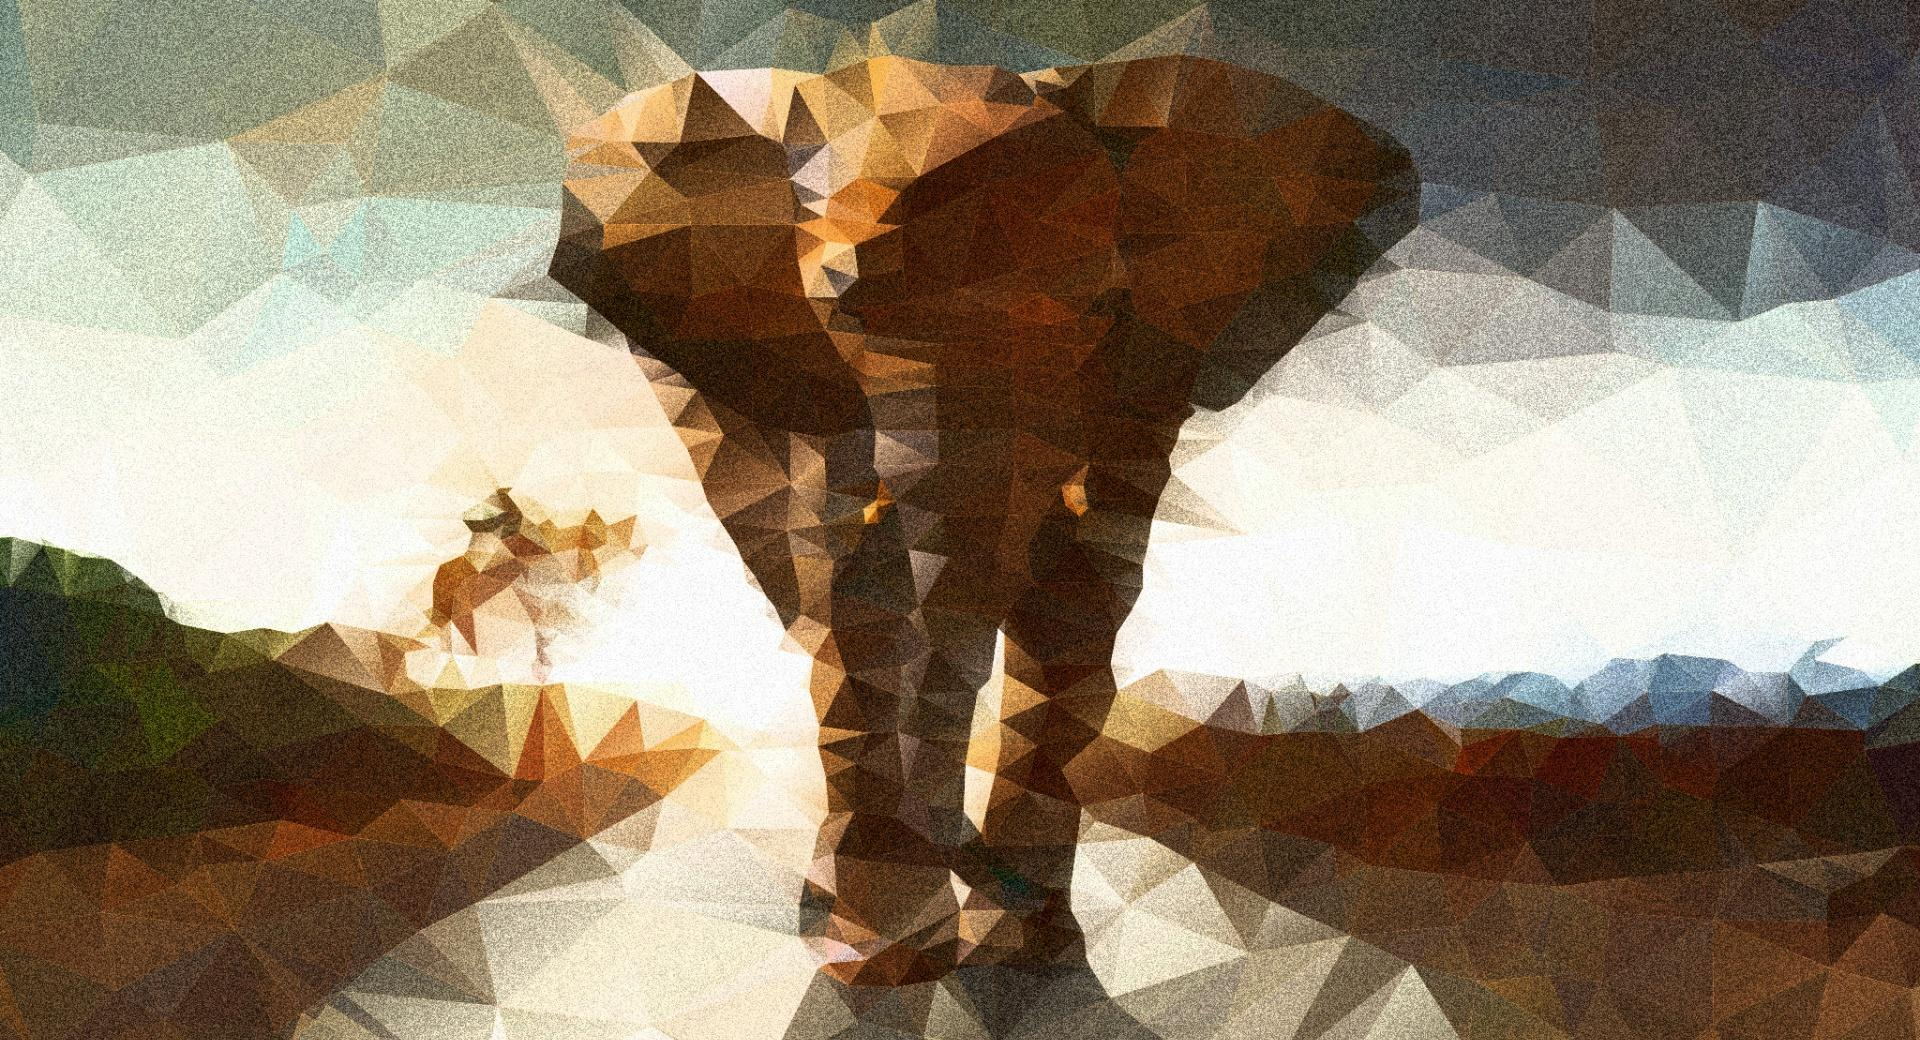 Elephant polygon illustration wallpapers HD quality